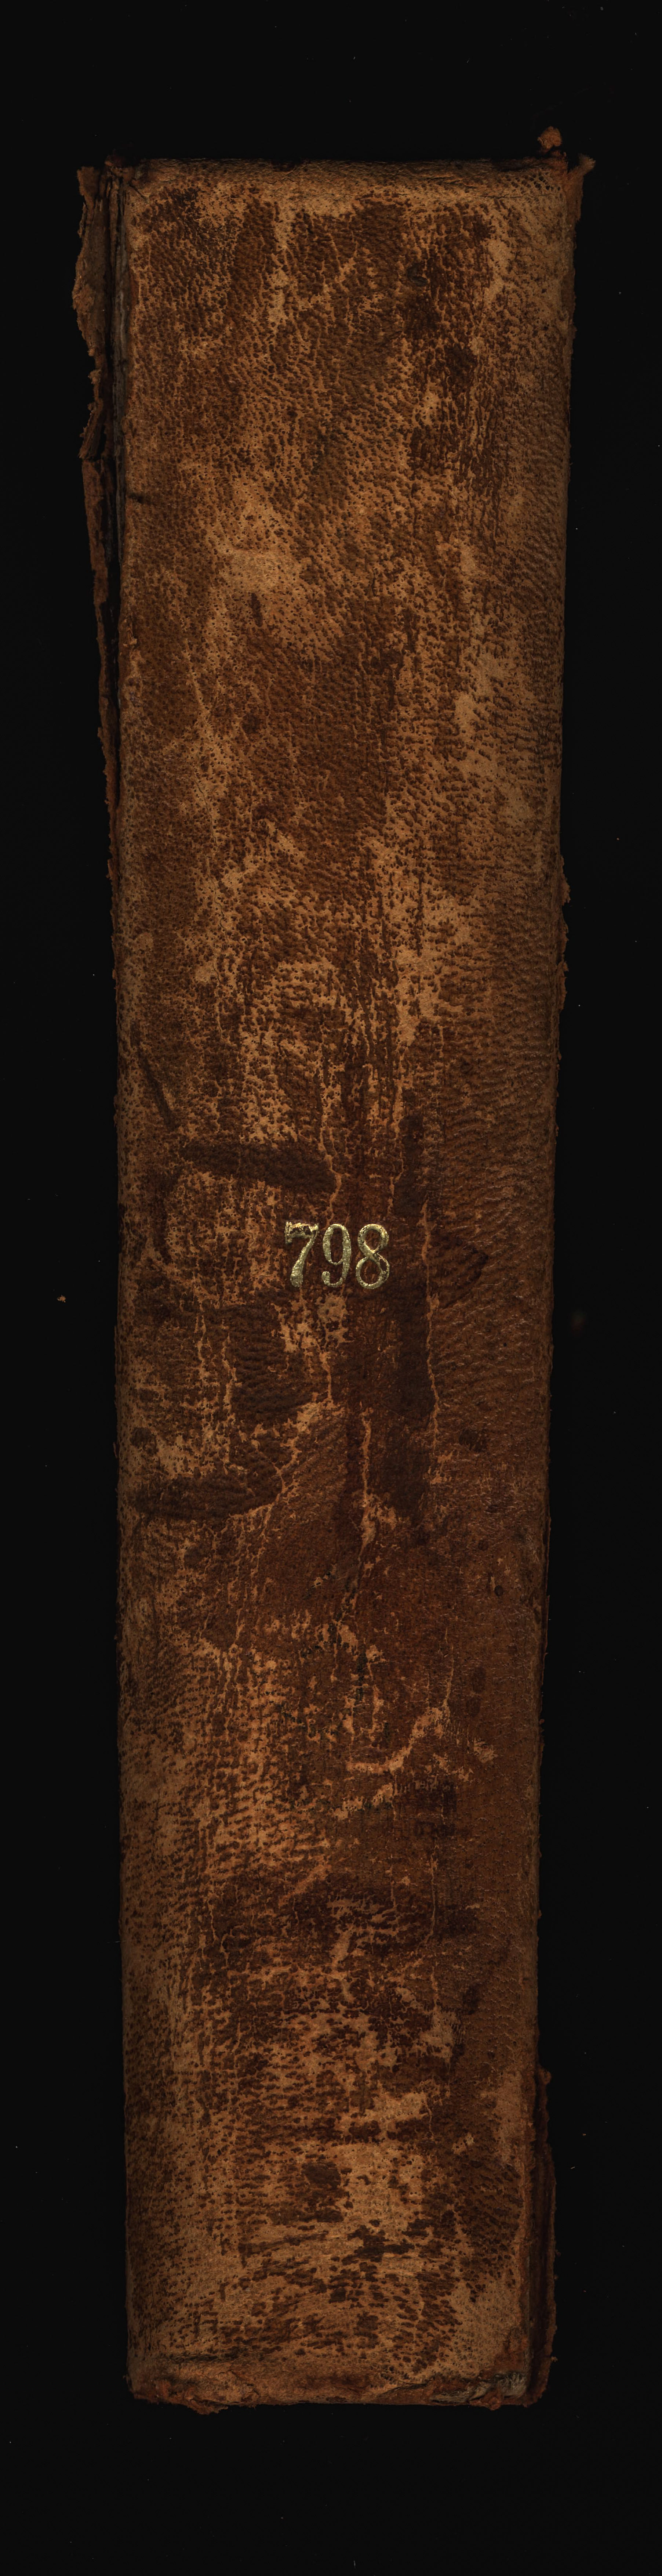 Book Cover Texture ~ Leather book cover texture textures for photoshop free